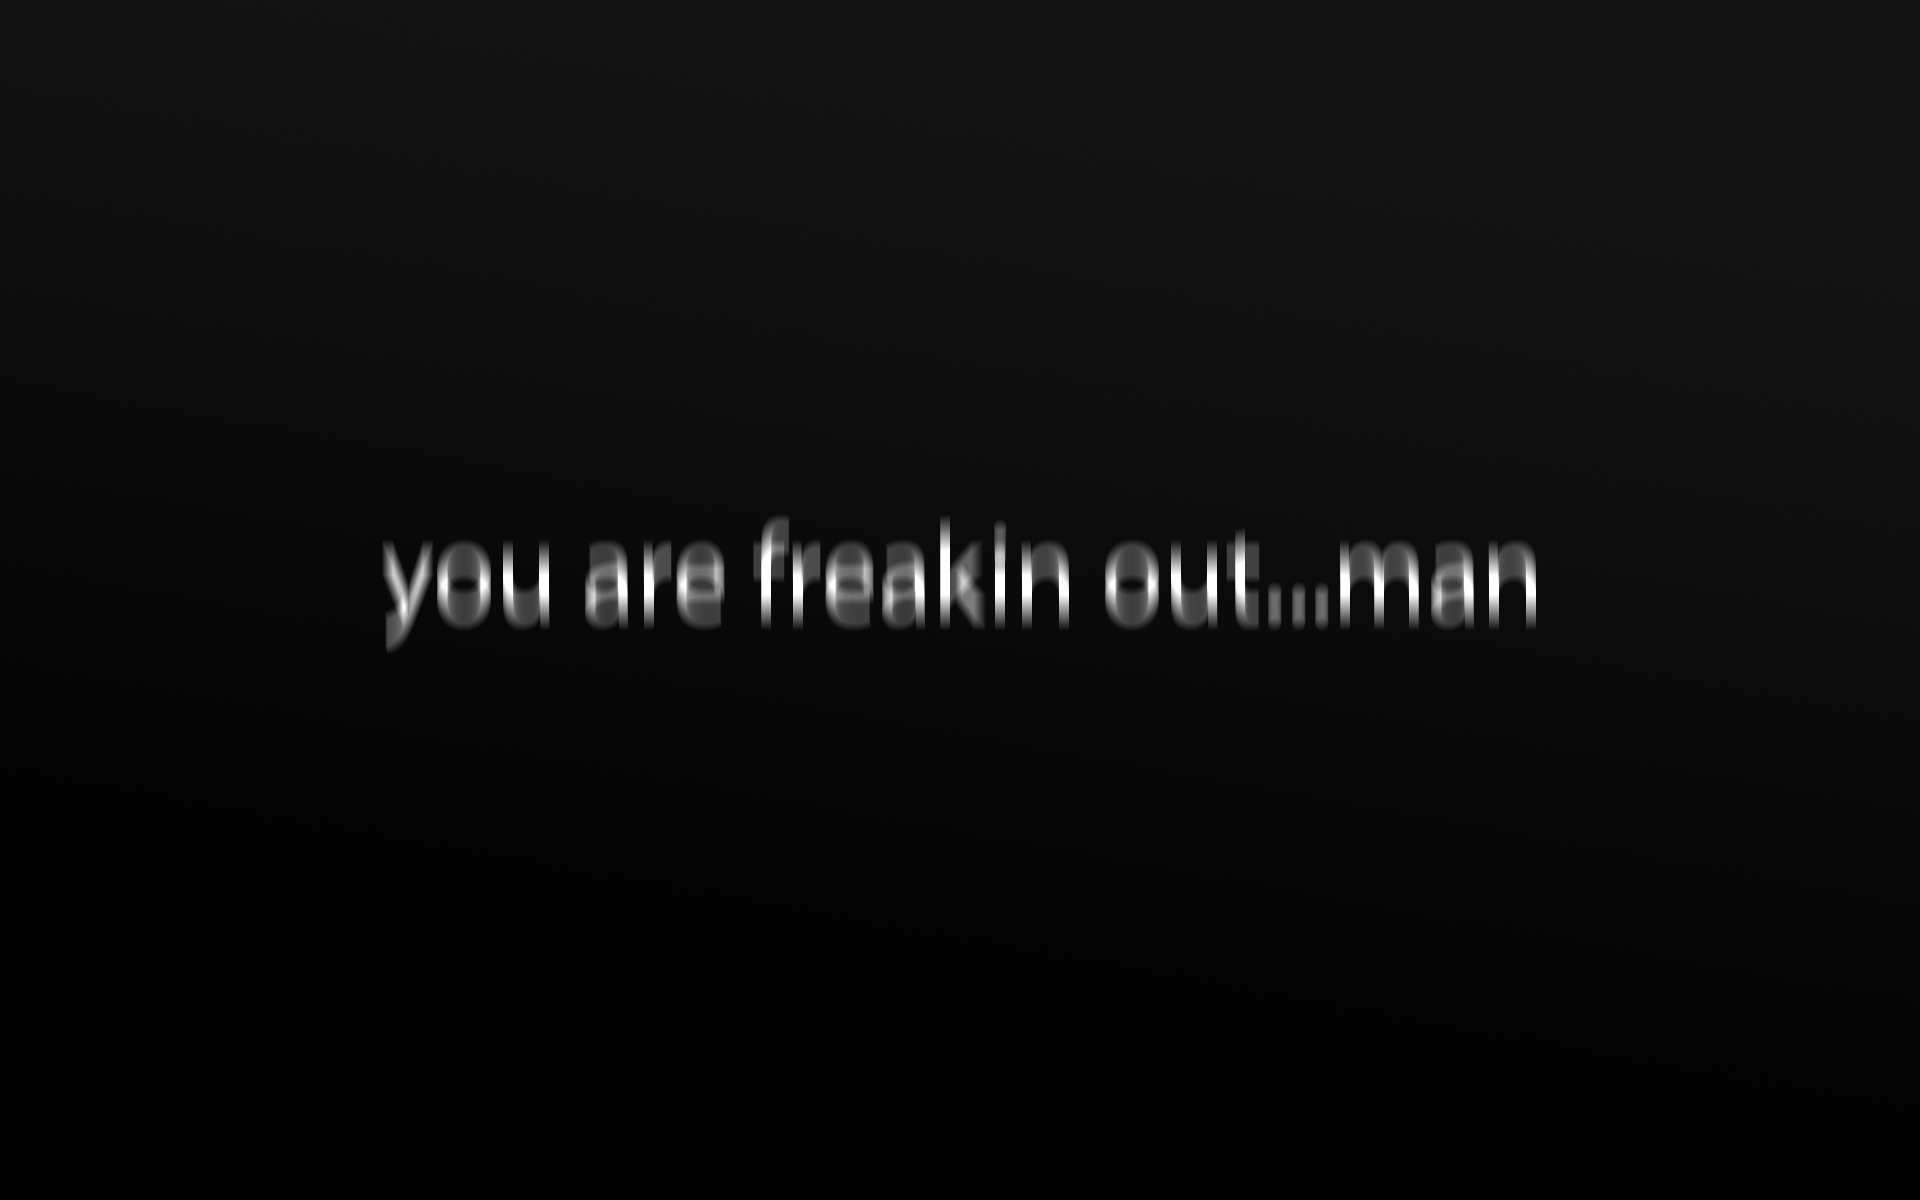 You are freaking out man wallpaper   691264 1920x1200